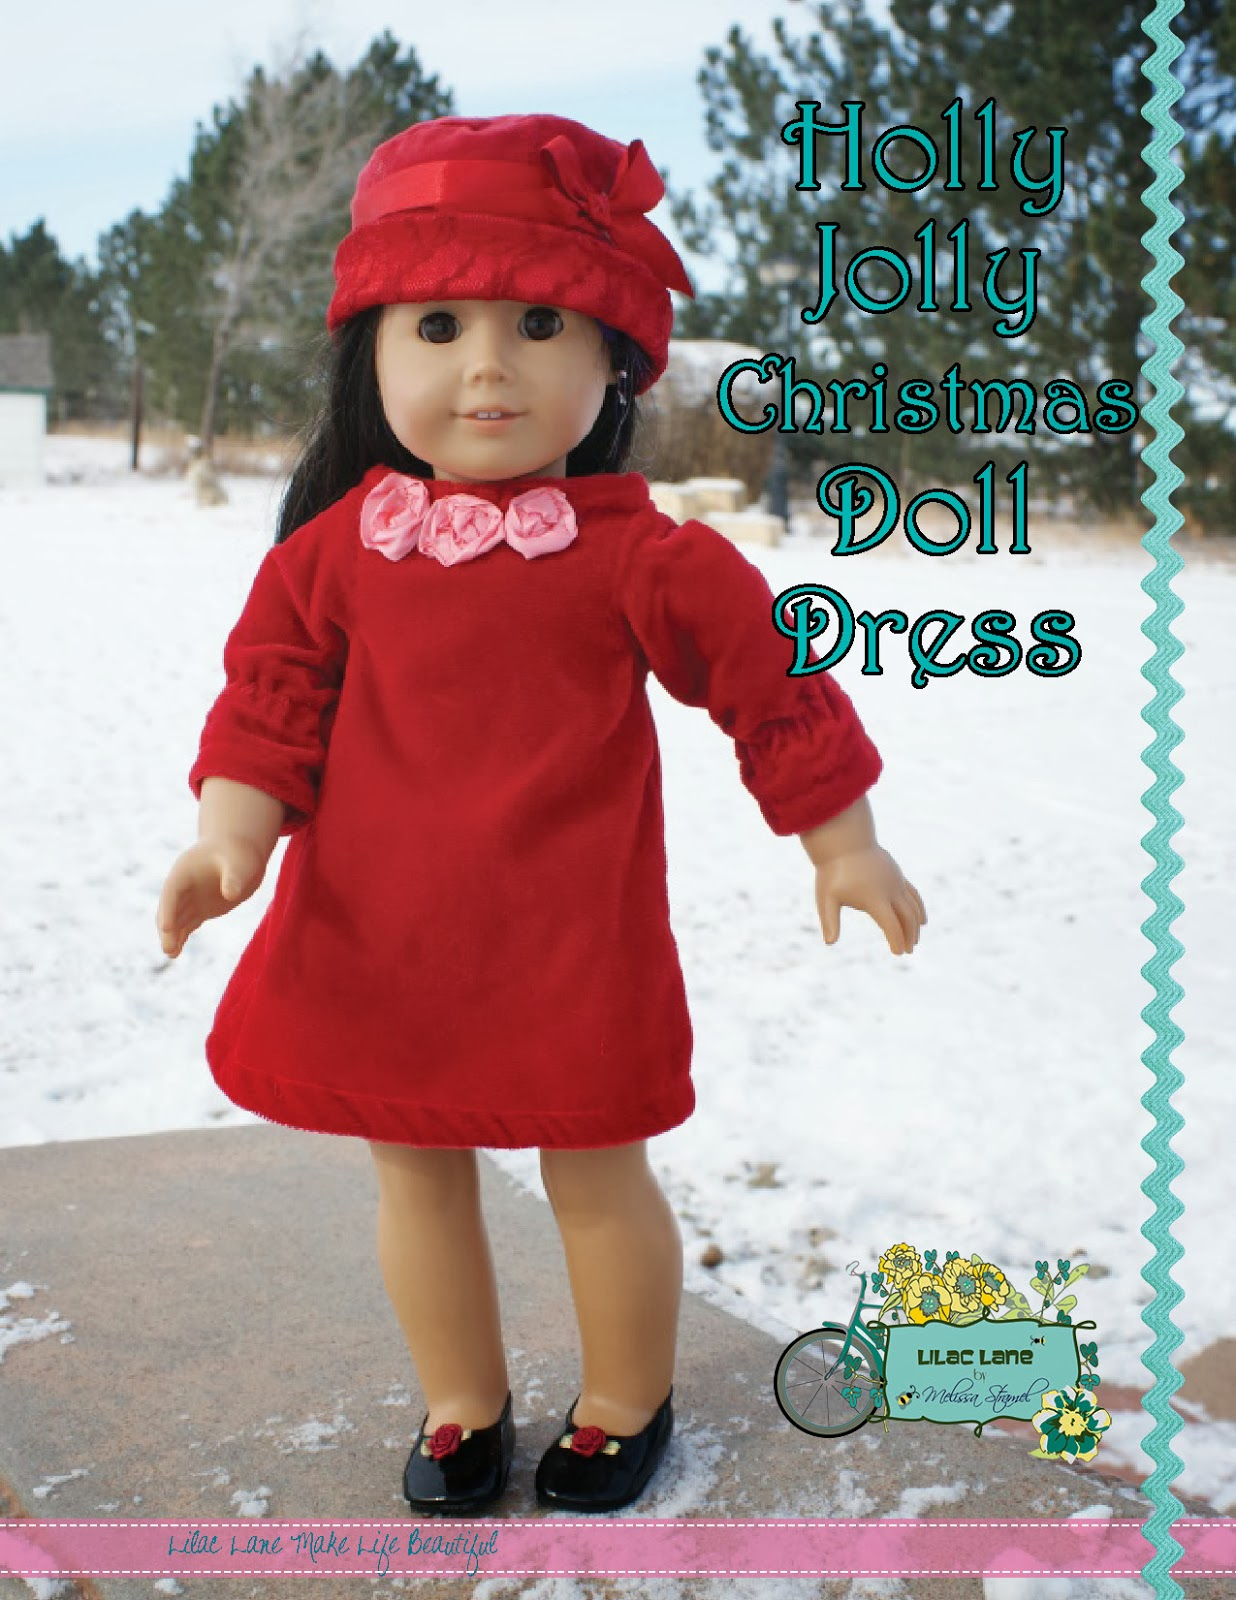 Free christmas doll dress pattern from lilac lane by melissa stramel